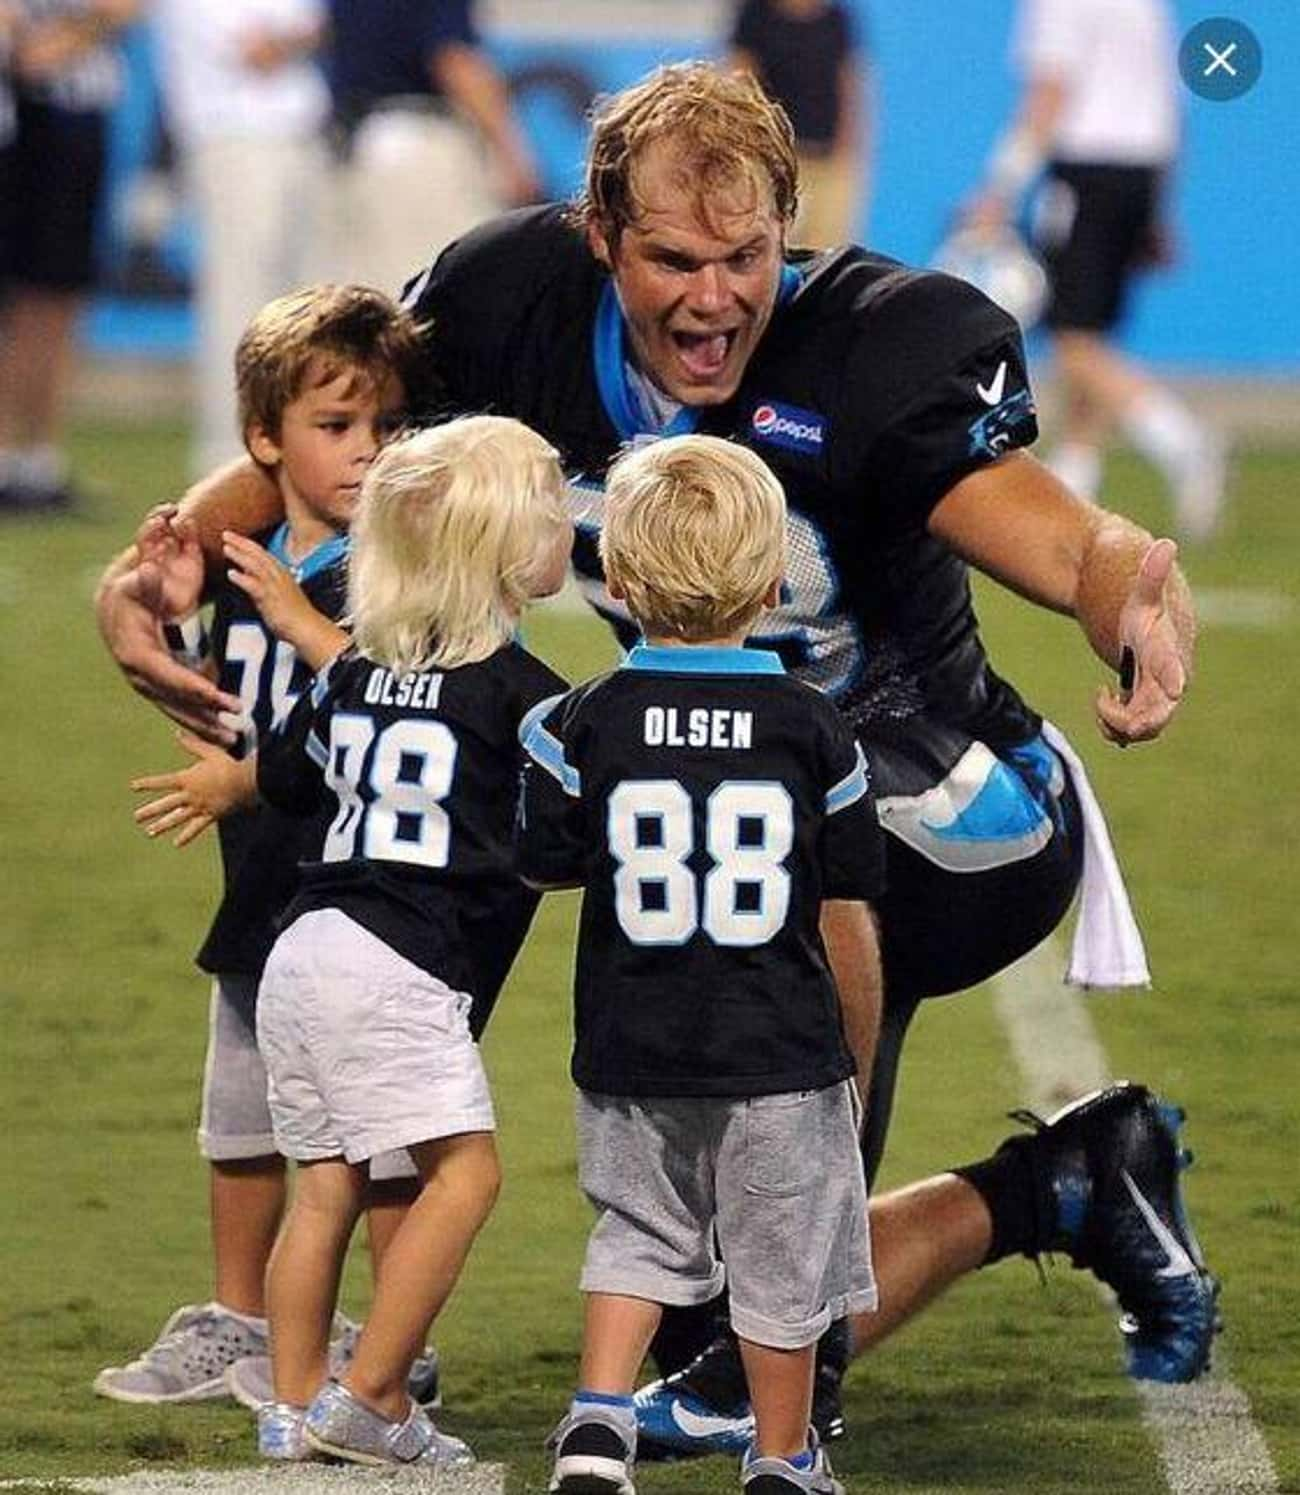 Greg Olsen Gets Surprised by H is listed (or ranked) 2 on the list Adorable Pictures of NFL Players Caught Being Dads